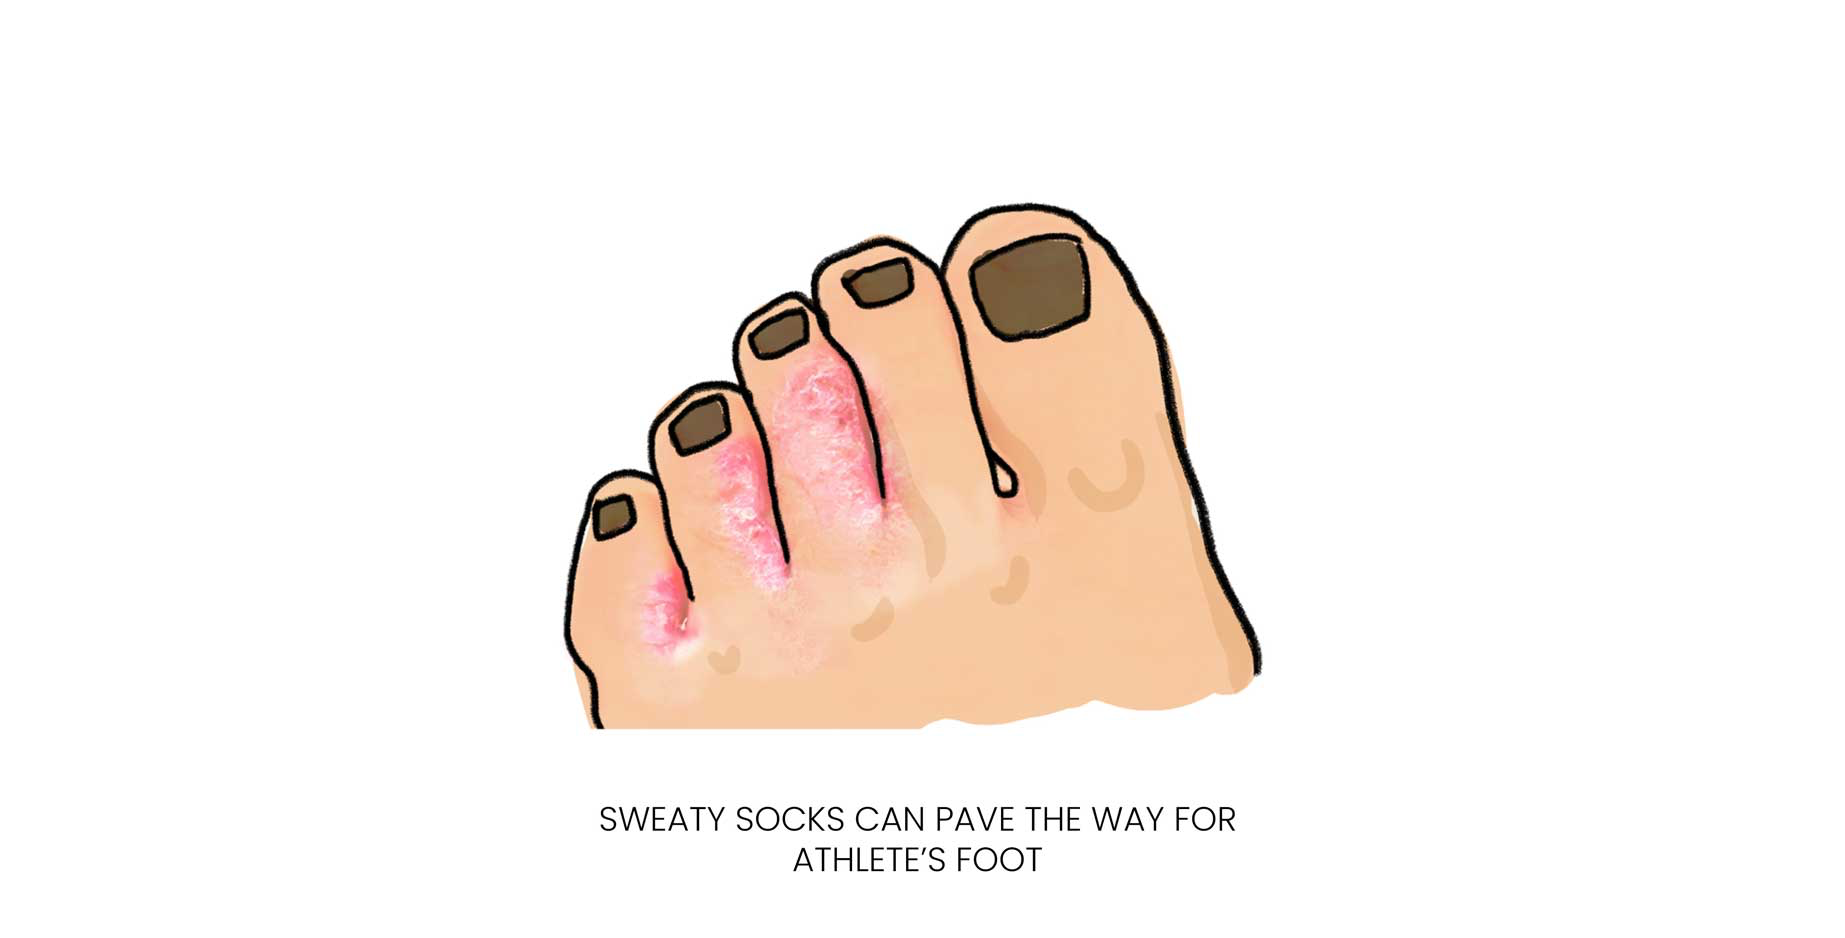 Sweaty workout clothes and socks - athlete's foot